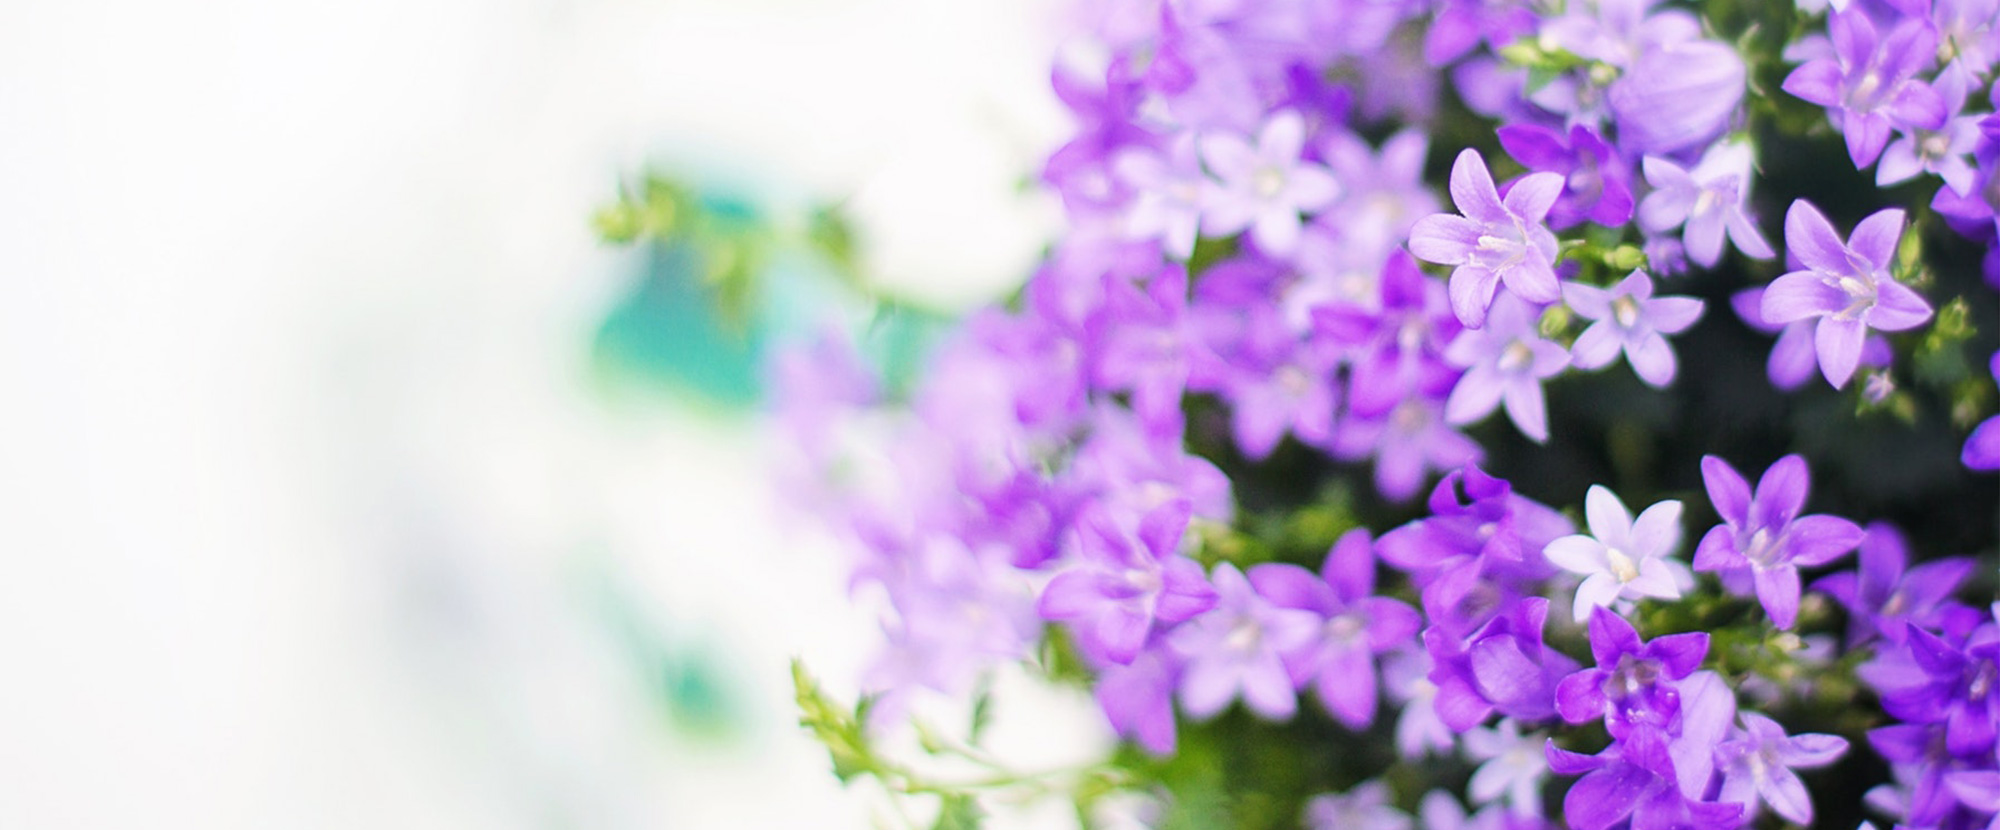 Find The Perfect Plants For Your Landscape and Garden Needs